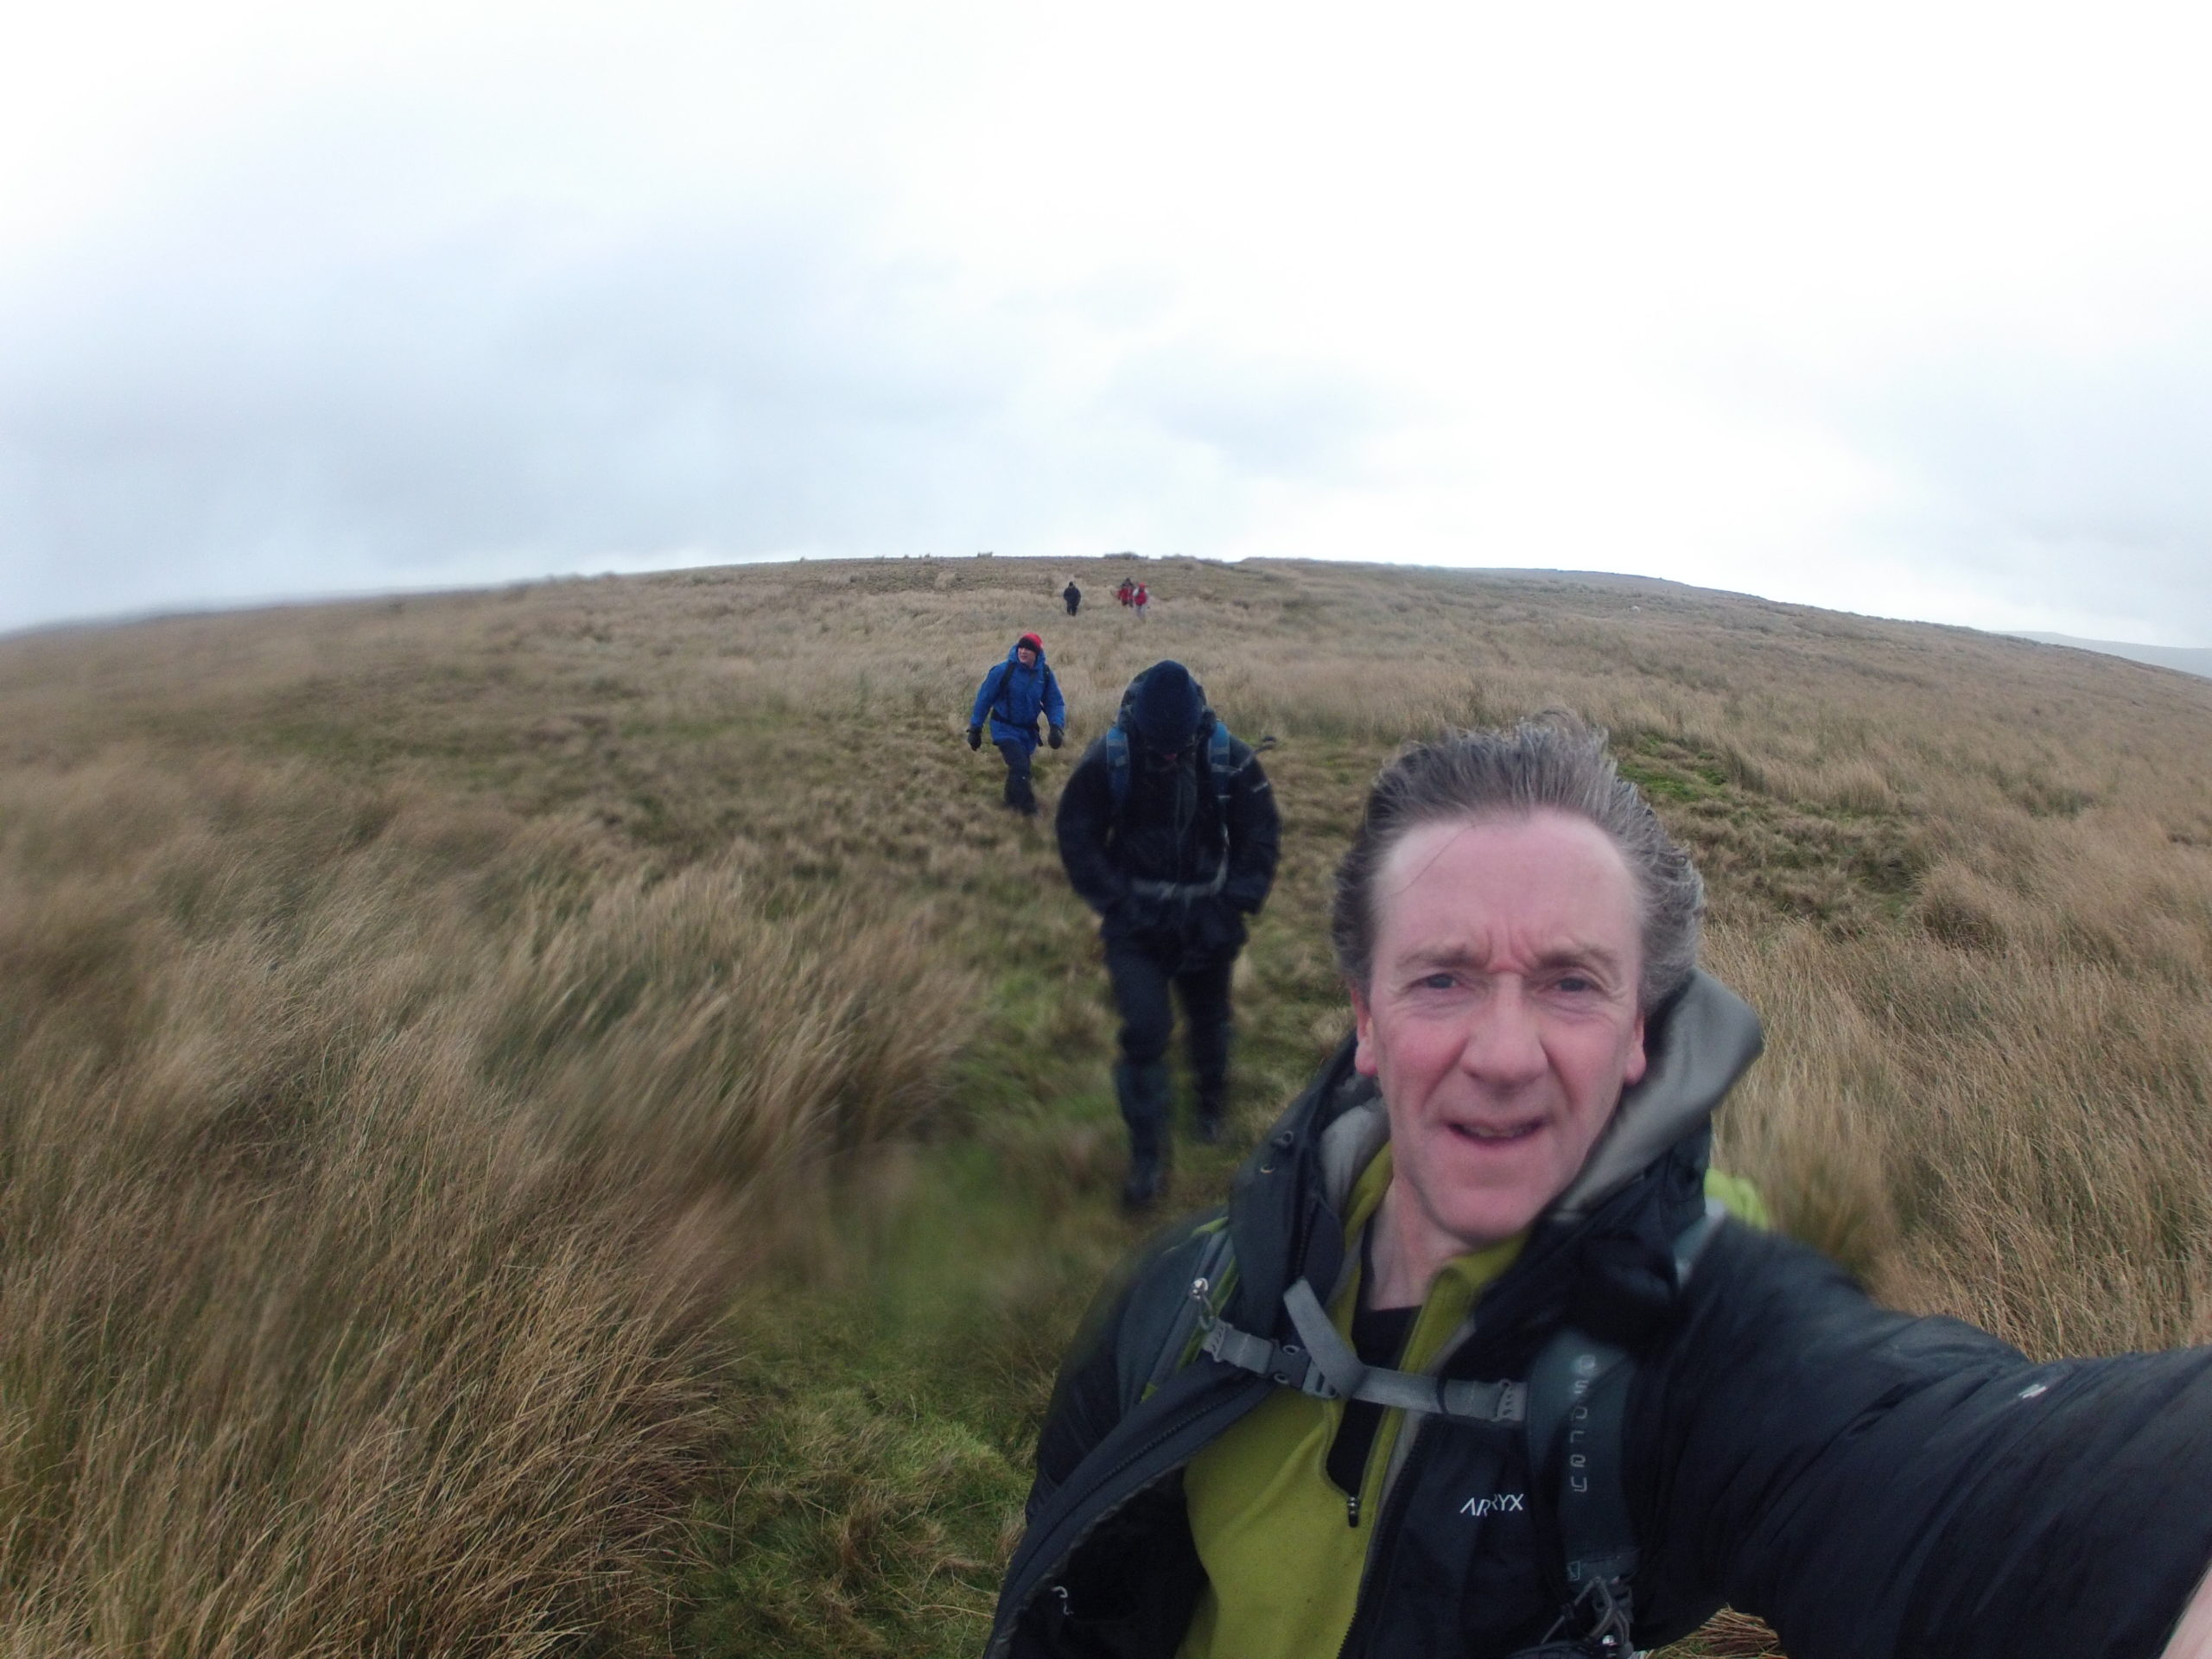 Heading back to Hebden in high winds across Mossy Moor